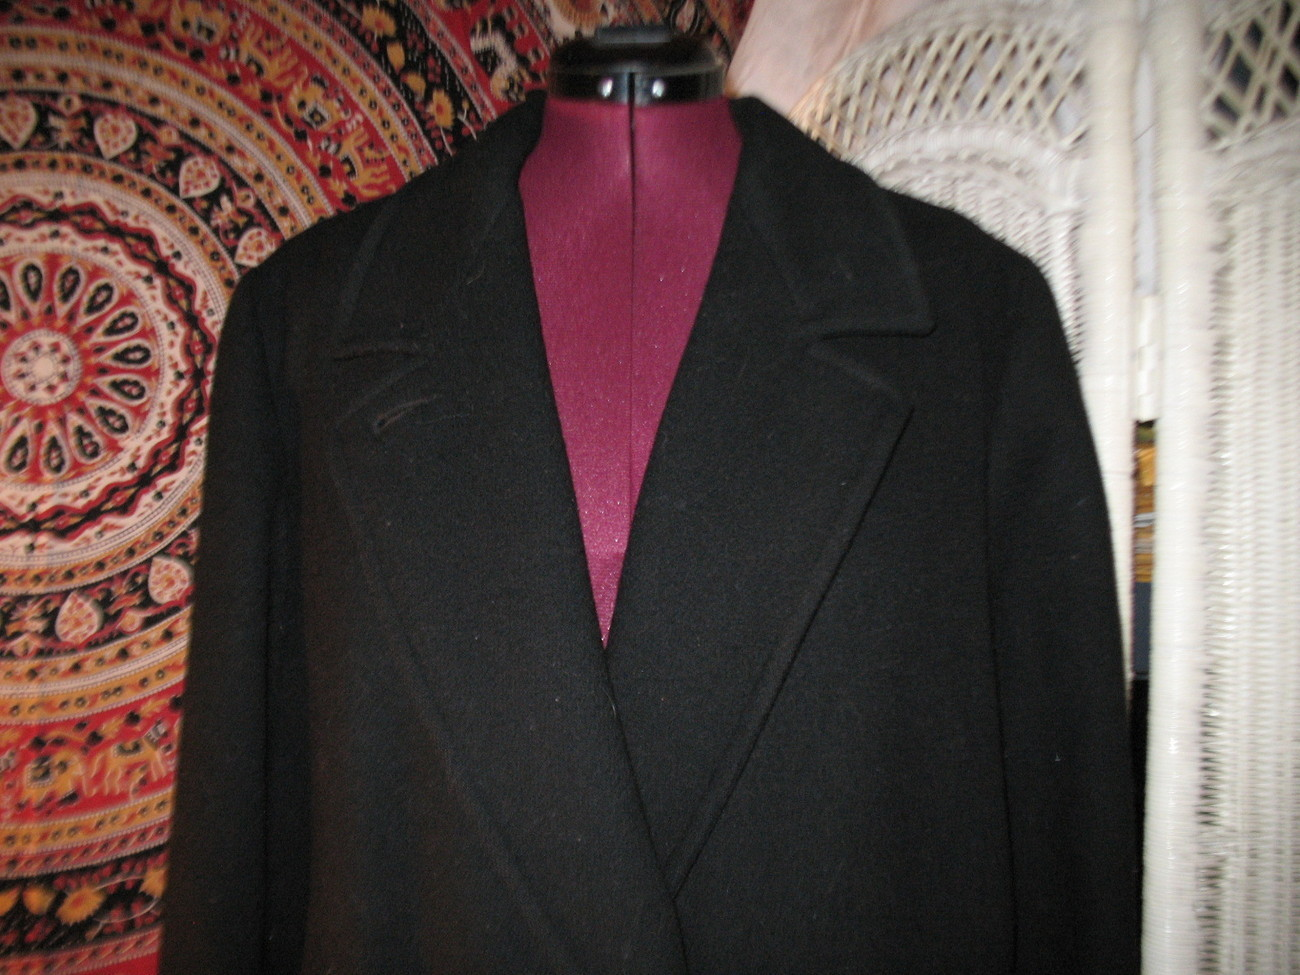 Donnybrook pure wool coat Black double breasted Winter dress jacket size 14